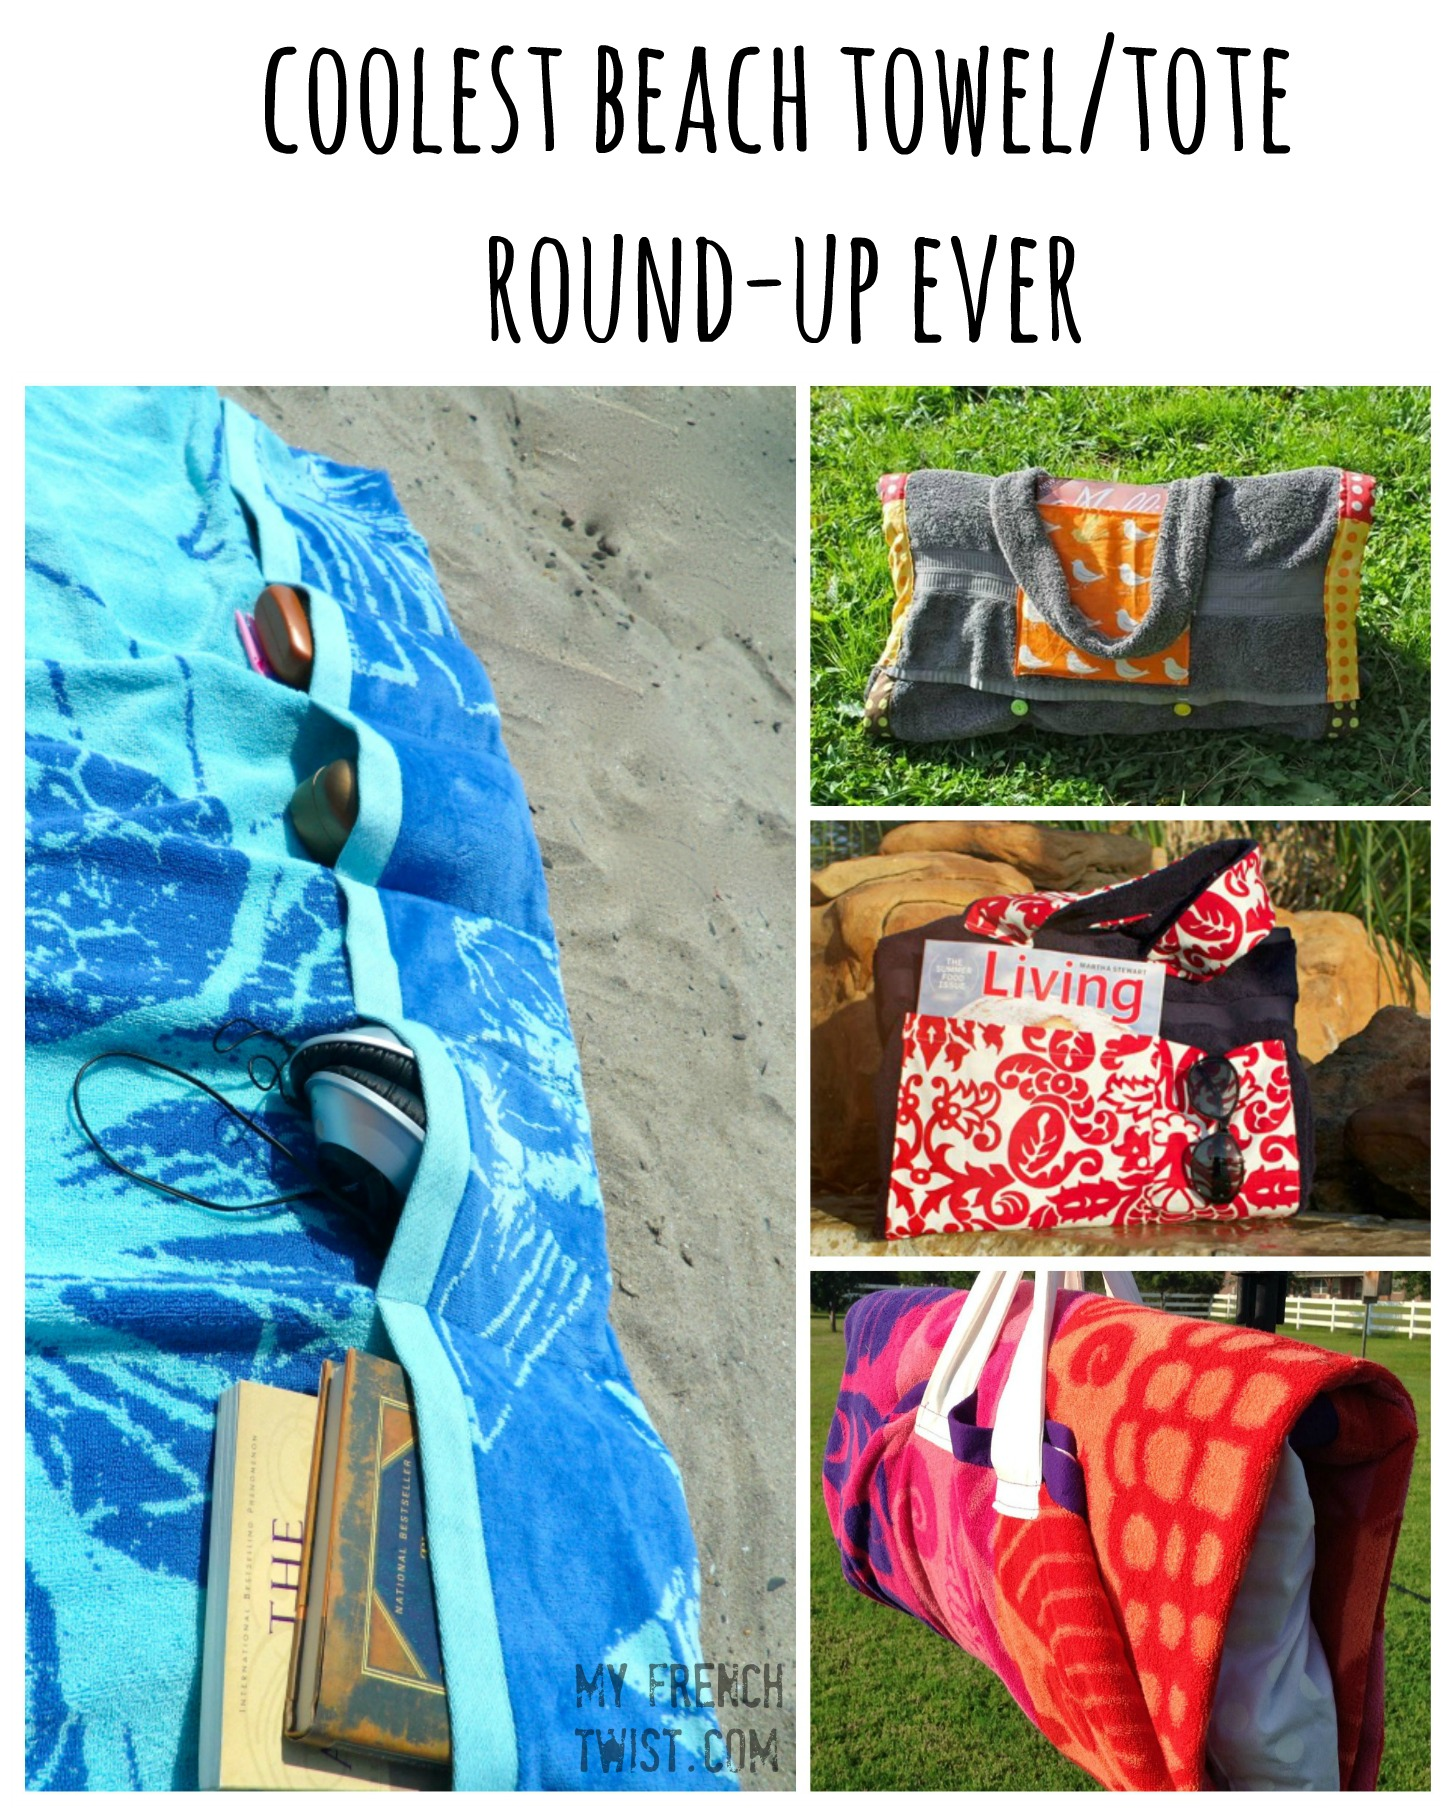 coolest beach towel/tote roundup ever - my french twist